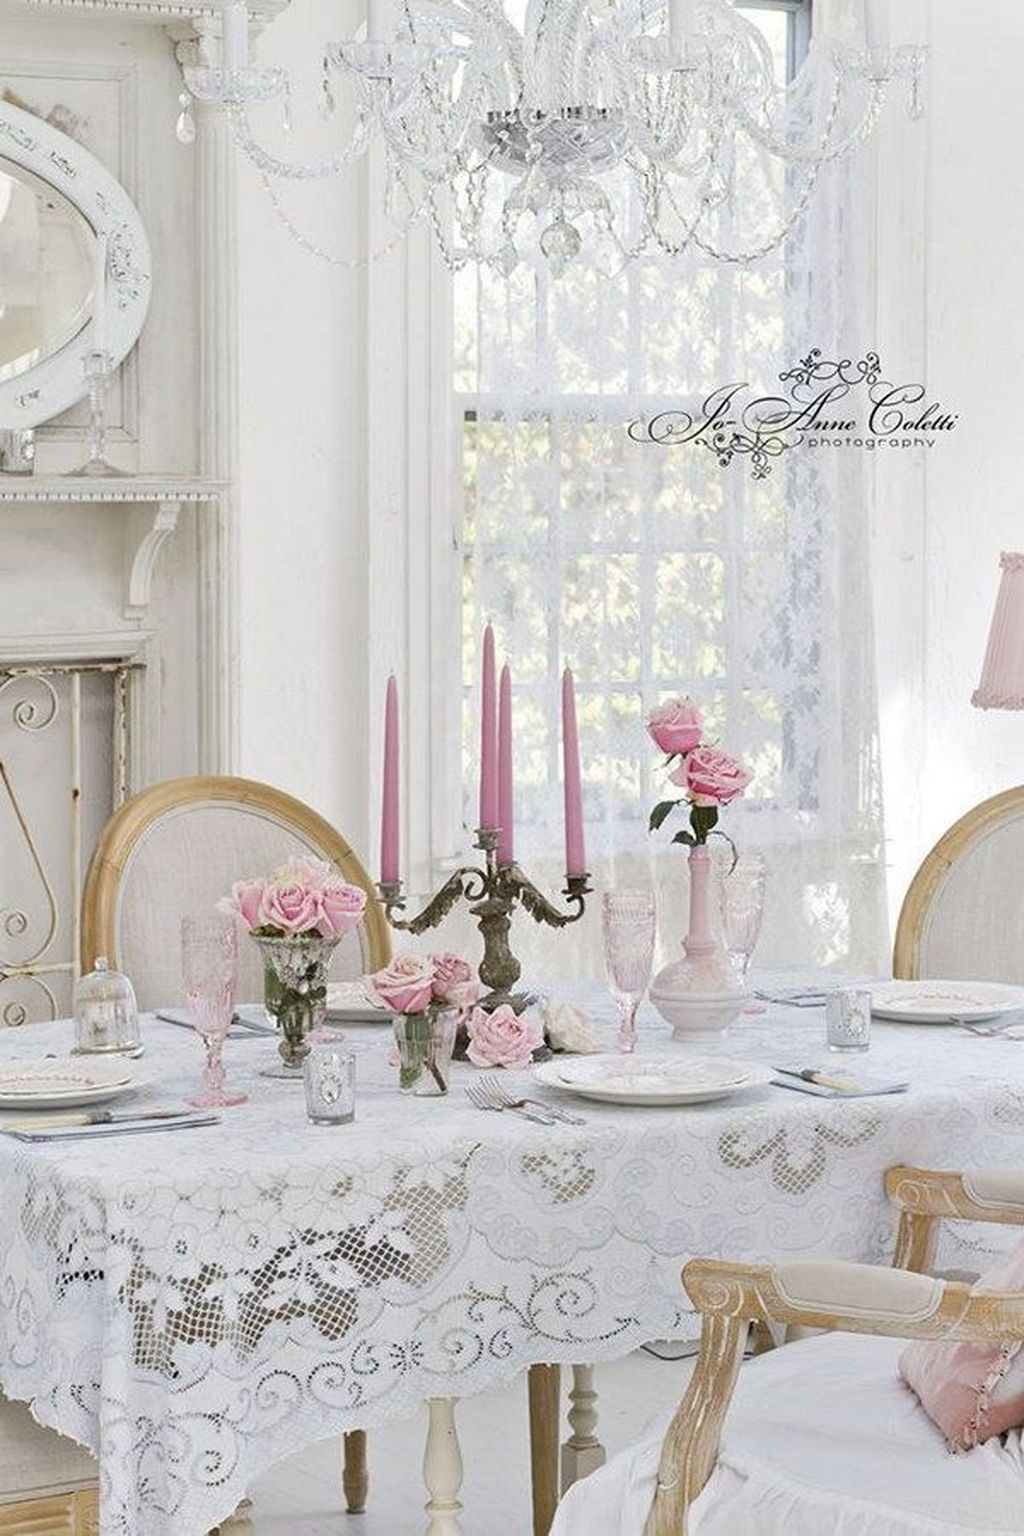 Stunning Romantic Dining Room Decor Ideas Best For Valentines Day 01